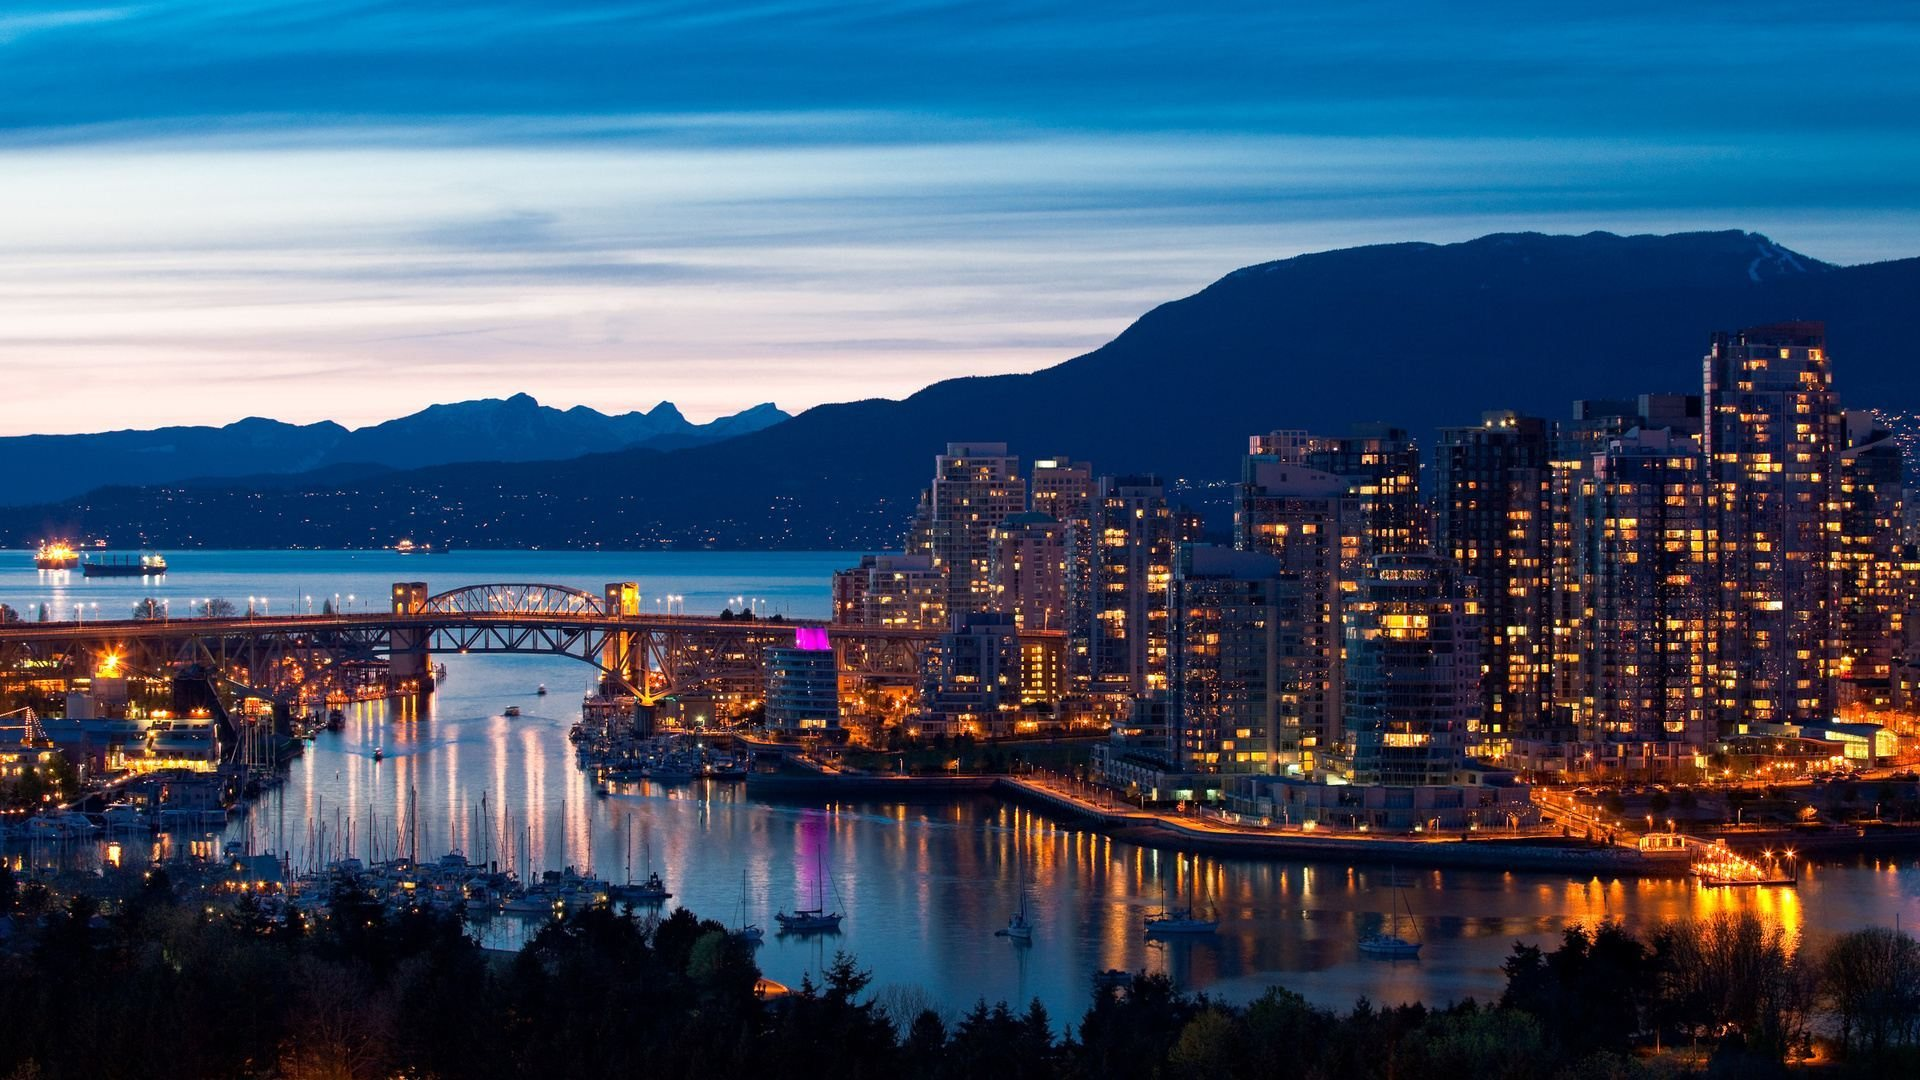 Wallpaper wallpaper vancouver for Wallpaper canada